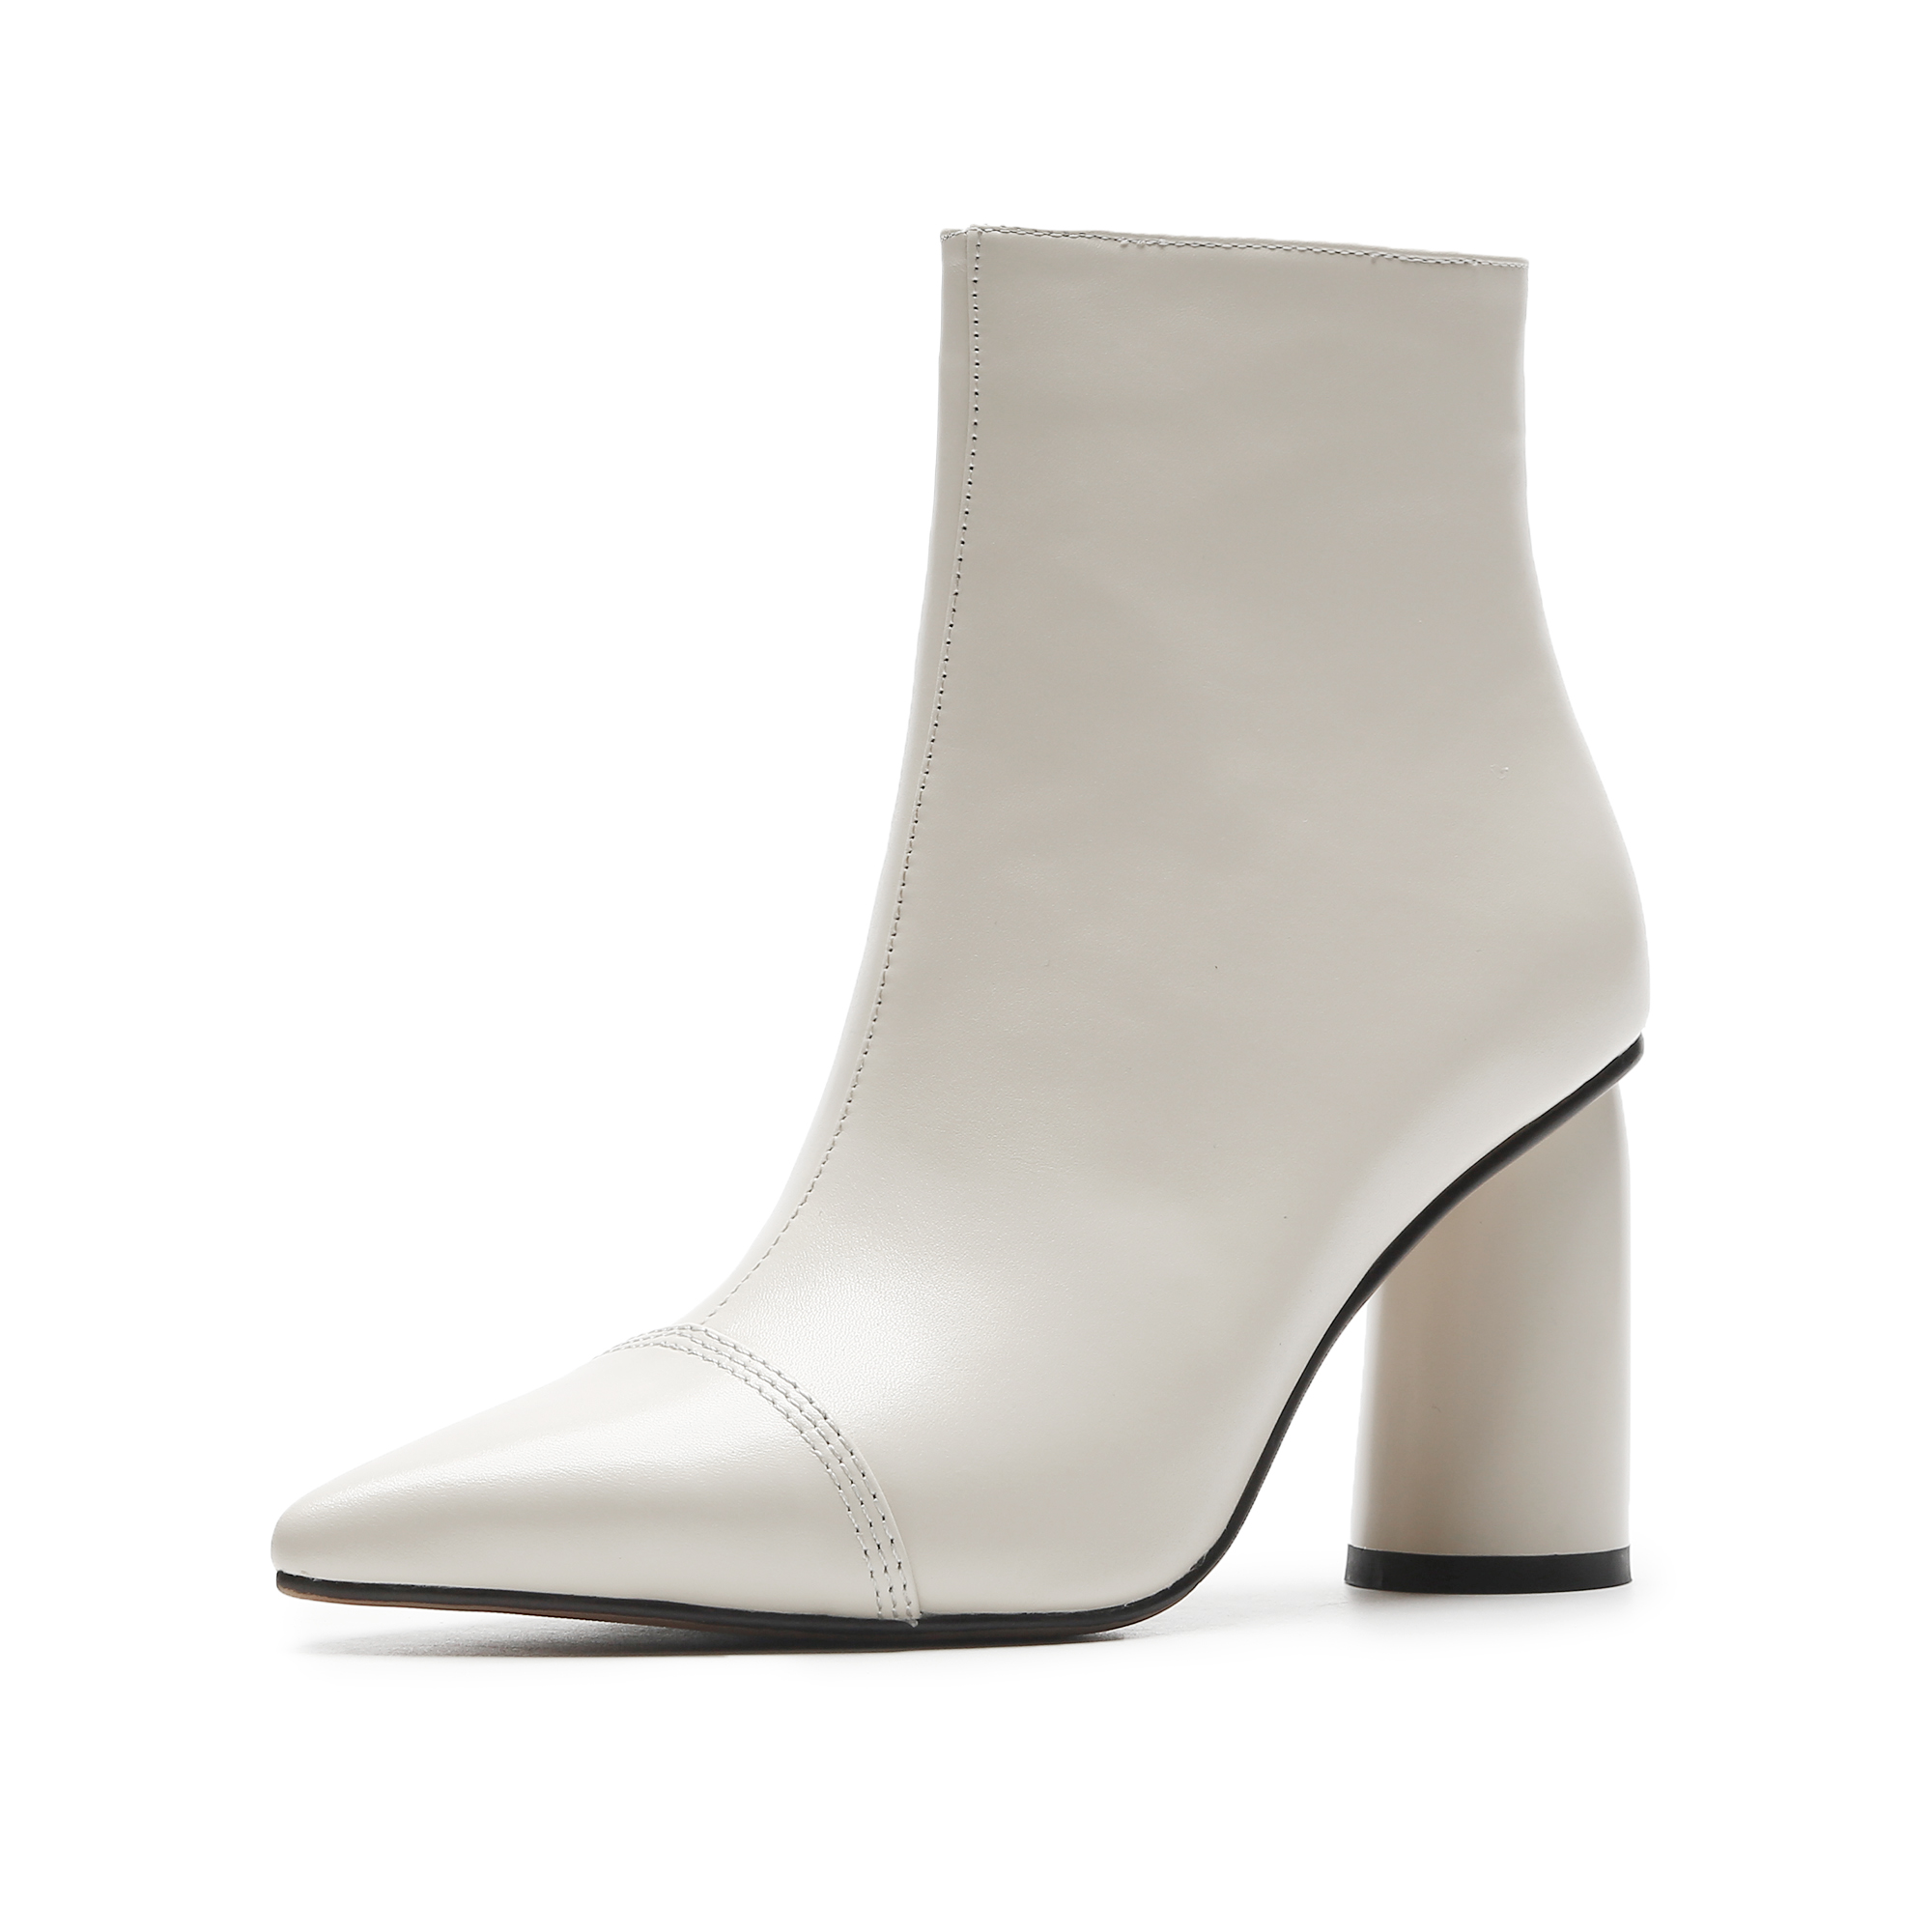 d214ad4ed2 US$ 60 - Autumn/winter 2018 women's shoes hot style pure color simple  leather pointed thick with short style women's boots - www.ardenfurtado.com